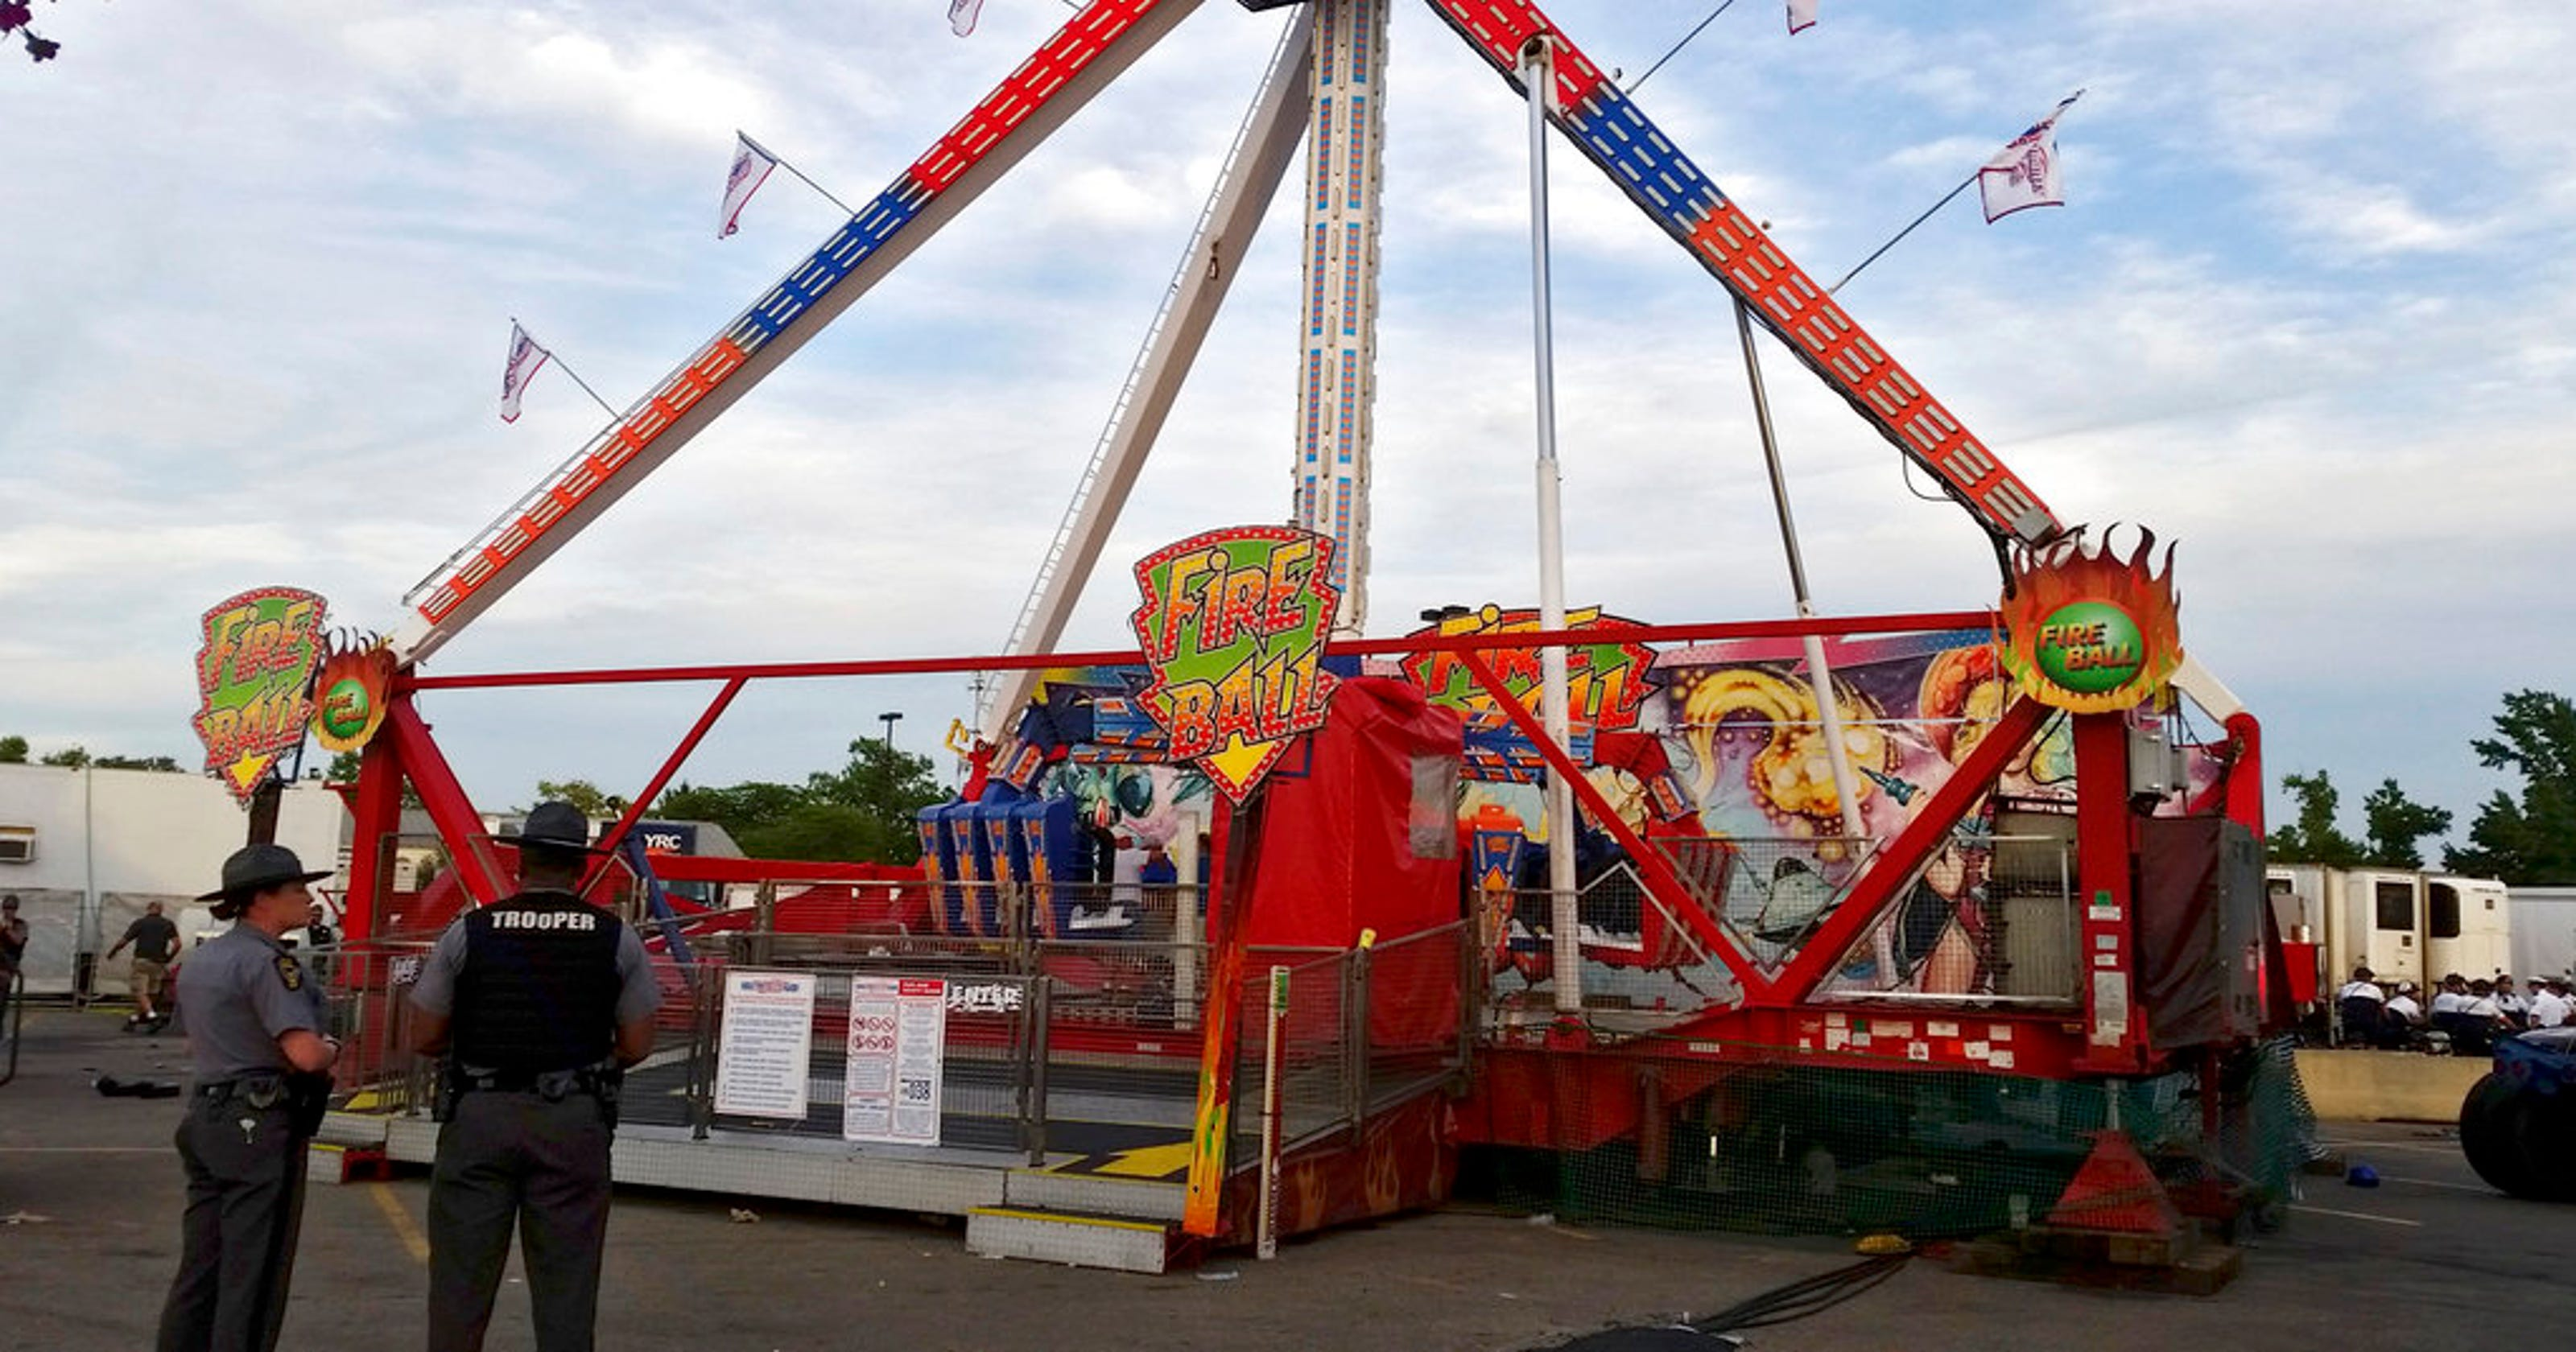 Hersheypark Closes Ride In Response To Ohio State Fair Death